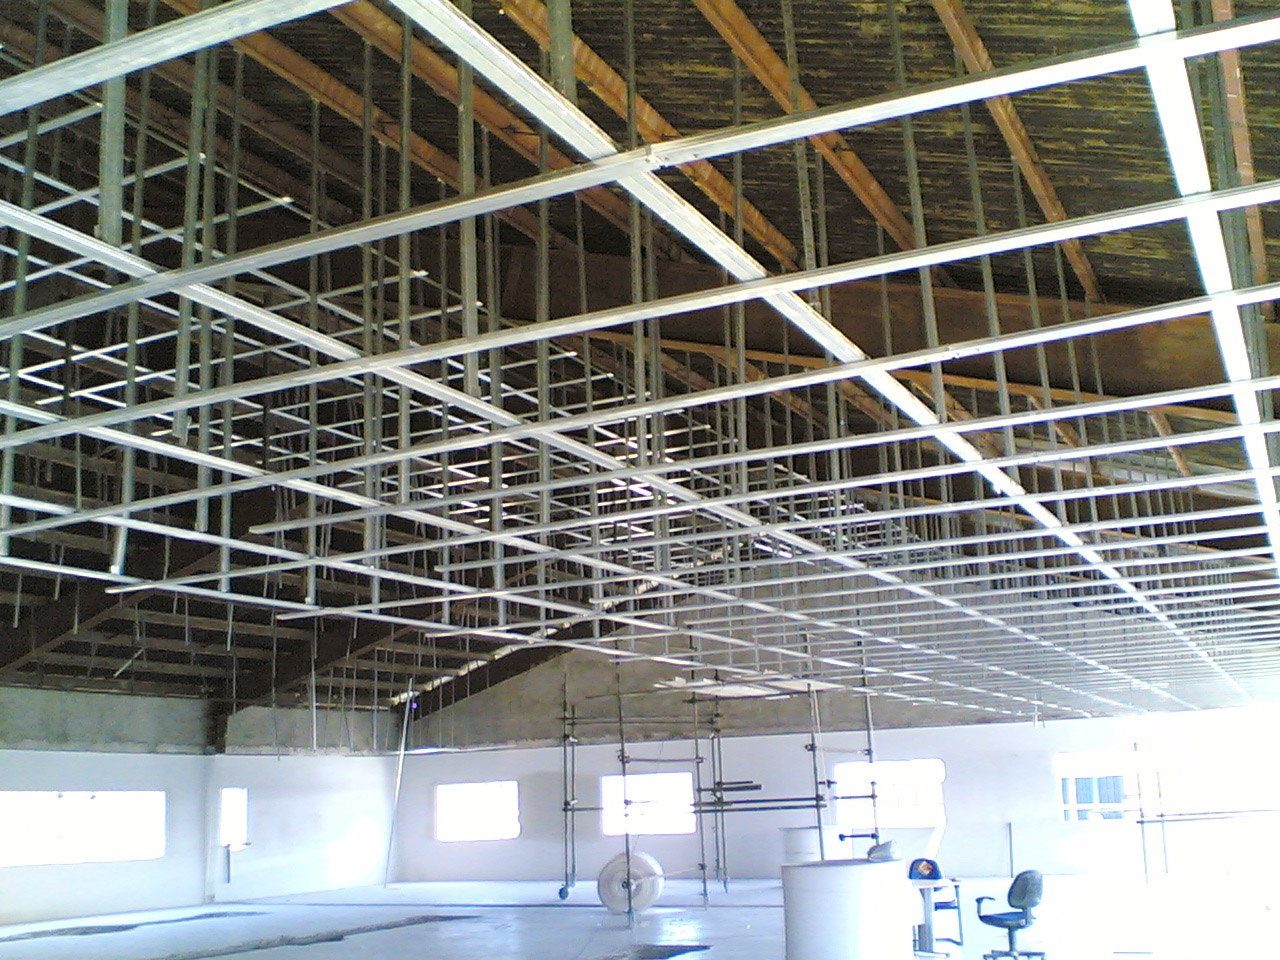 During Renovations